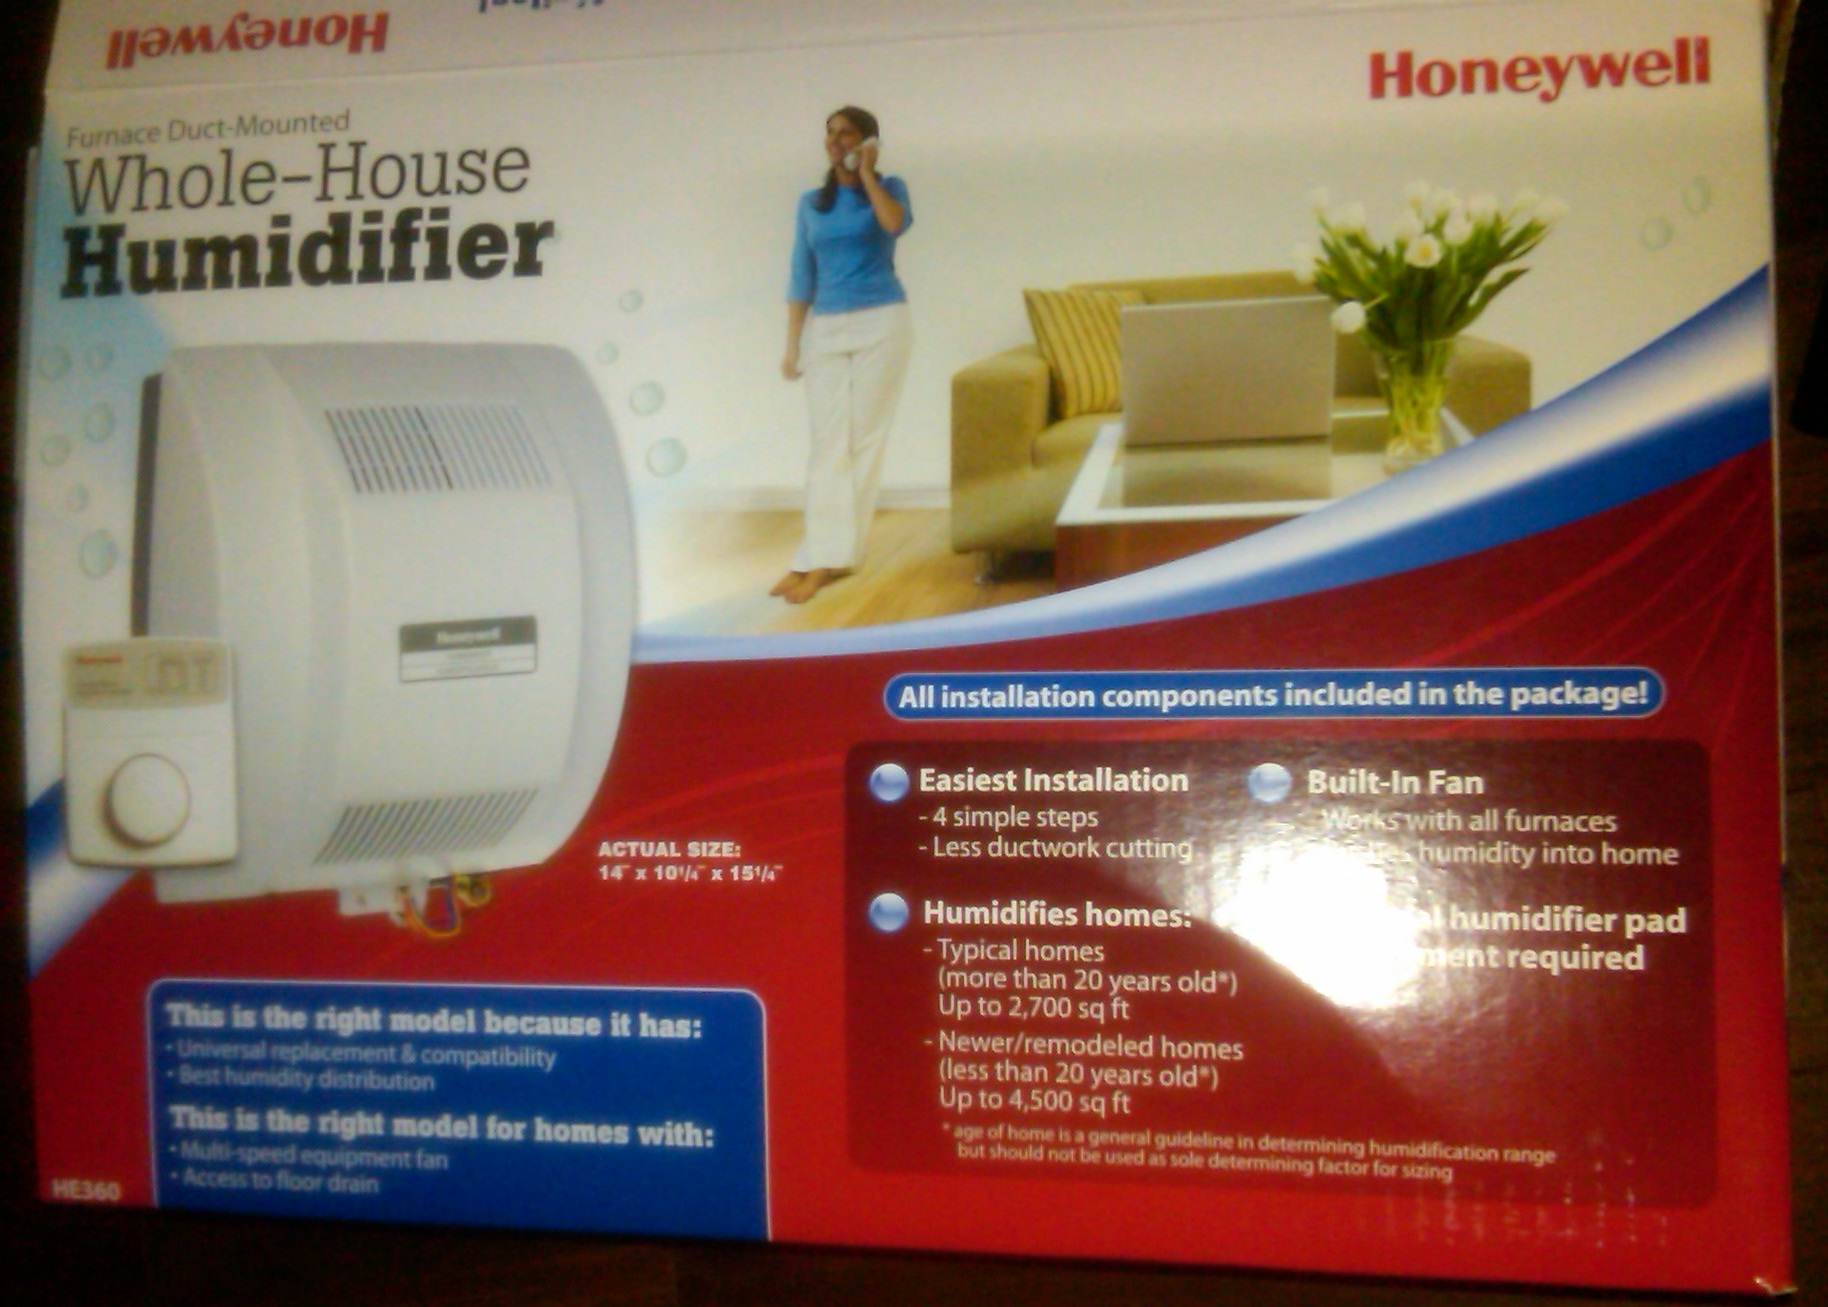 When I picked up the humidifier from Home Depot I went through the  #AE1A12